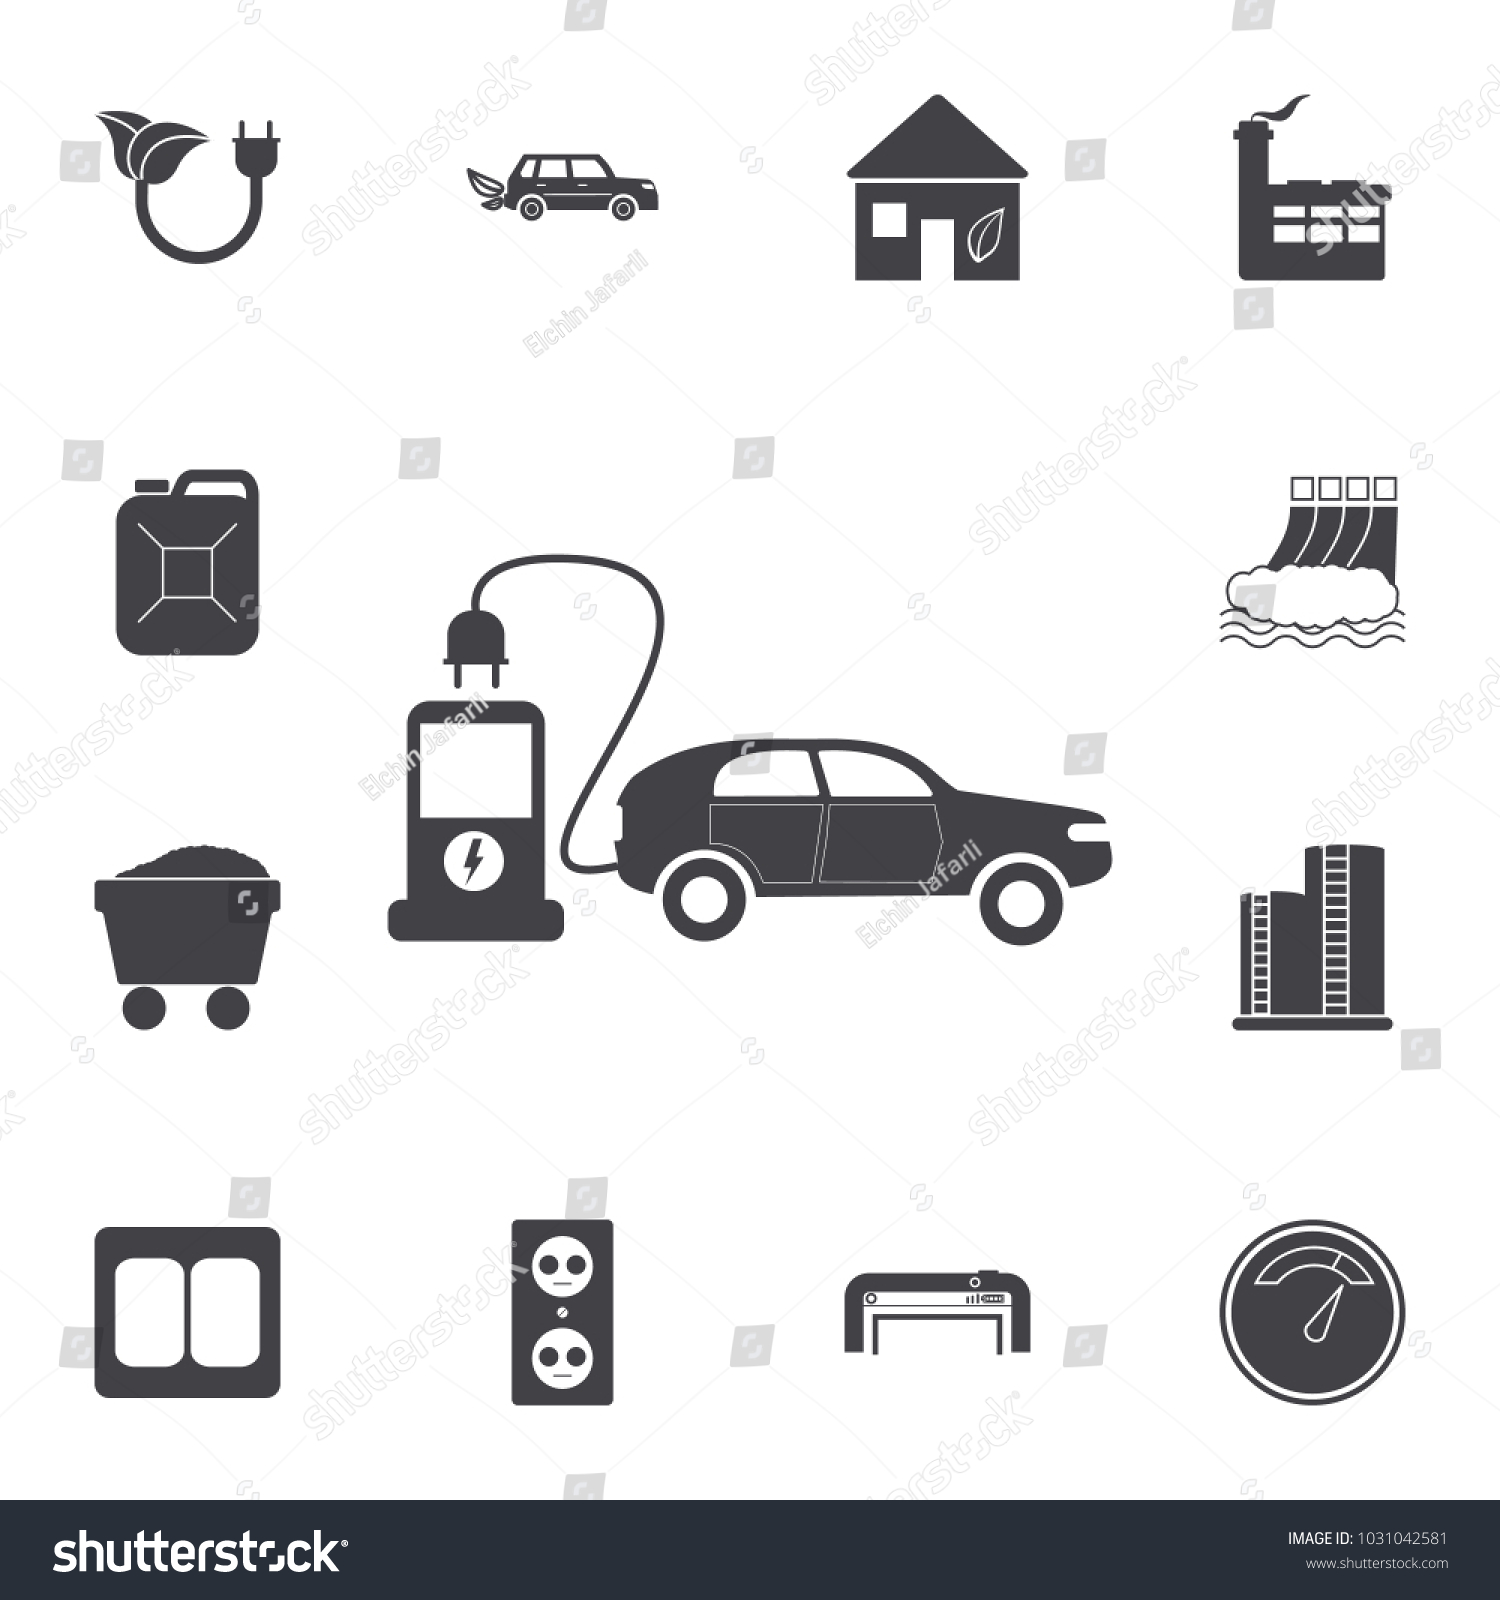 Electric car icon set energy icons stock vector 1031042581 set of energy icons signs and symbols collection icons for websites buycottarizona Choice Image